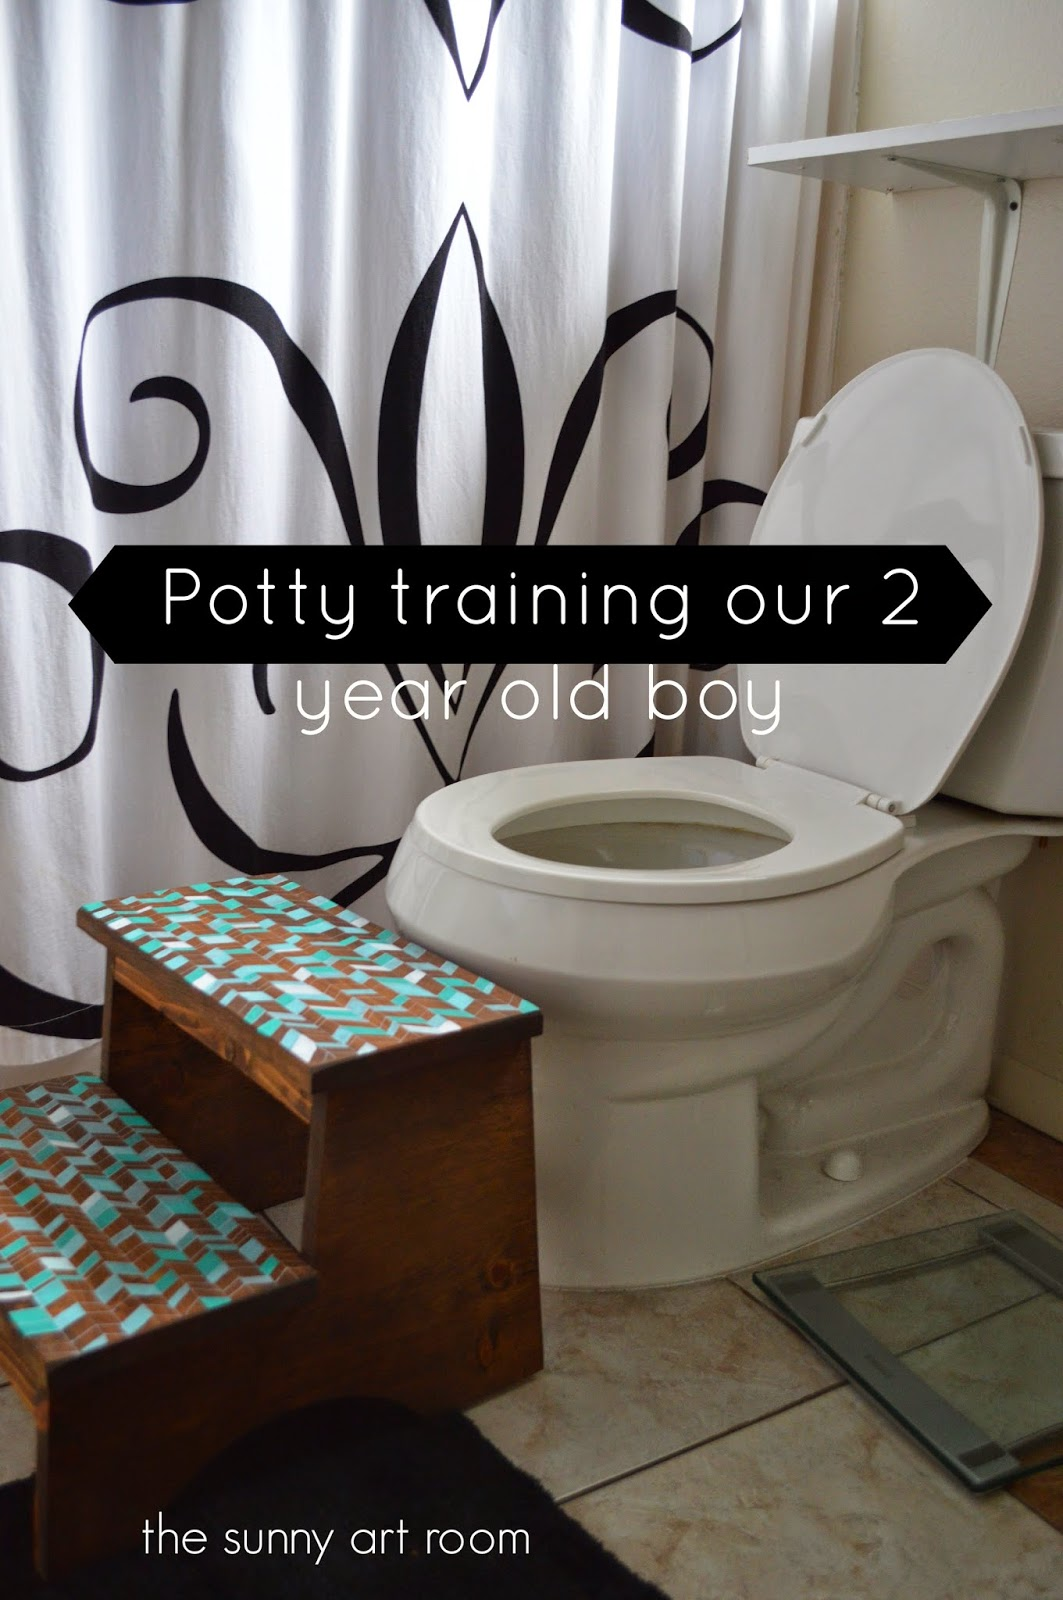 how to start potty training 3 year old